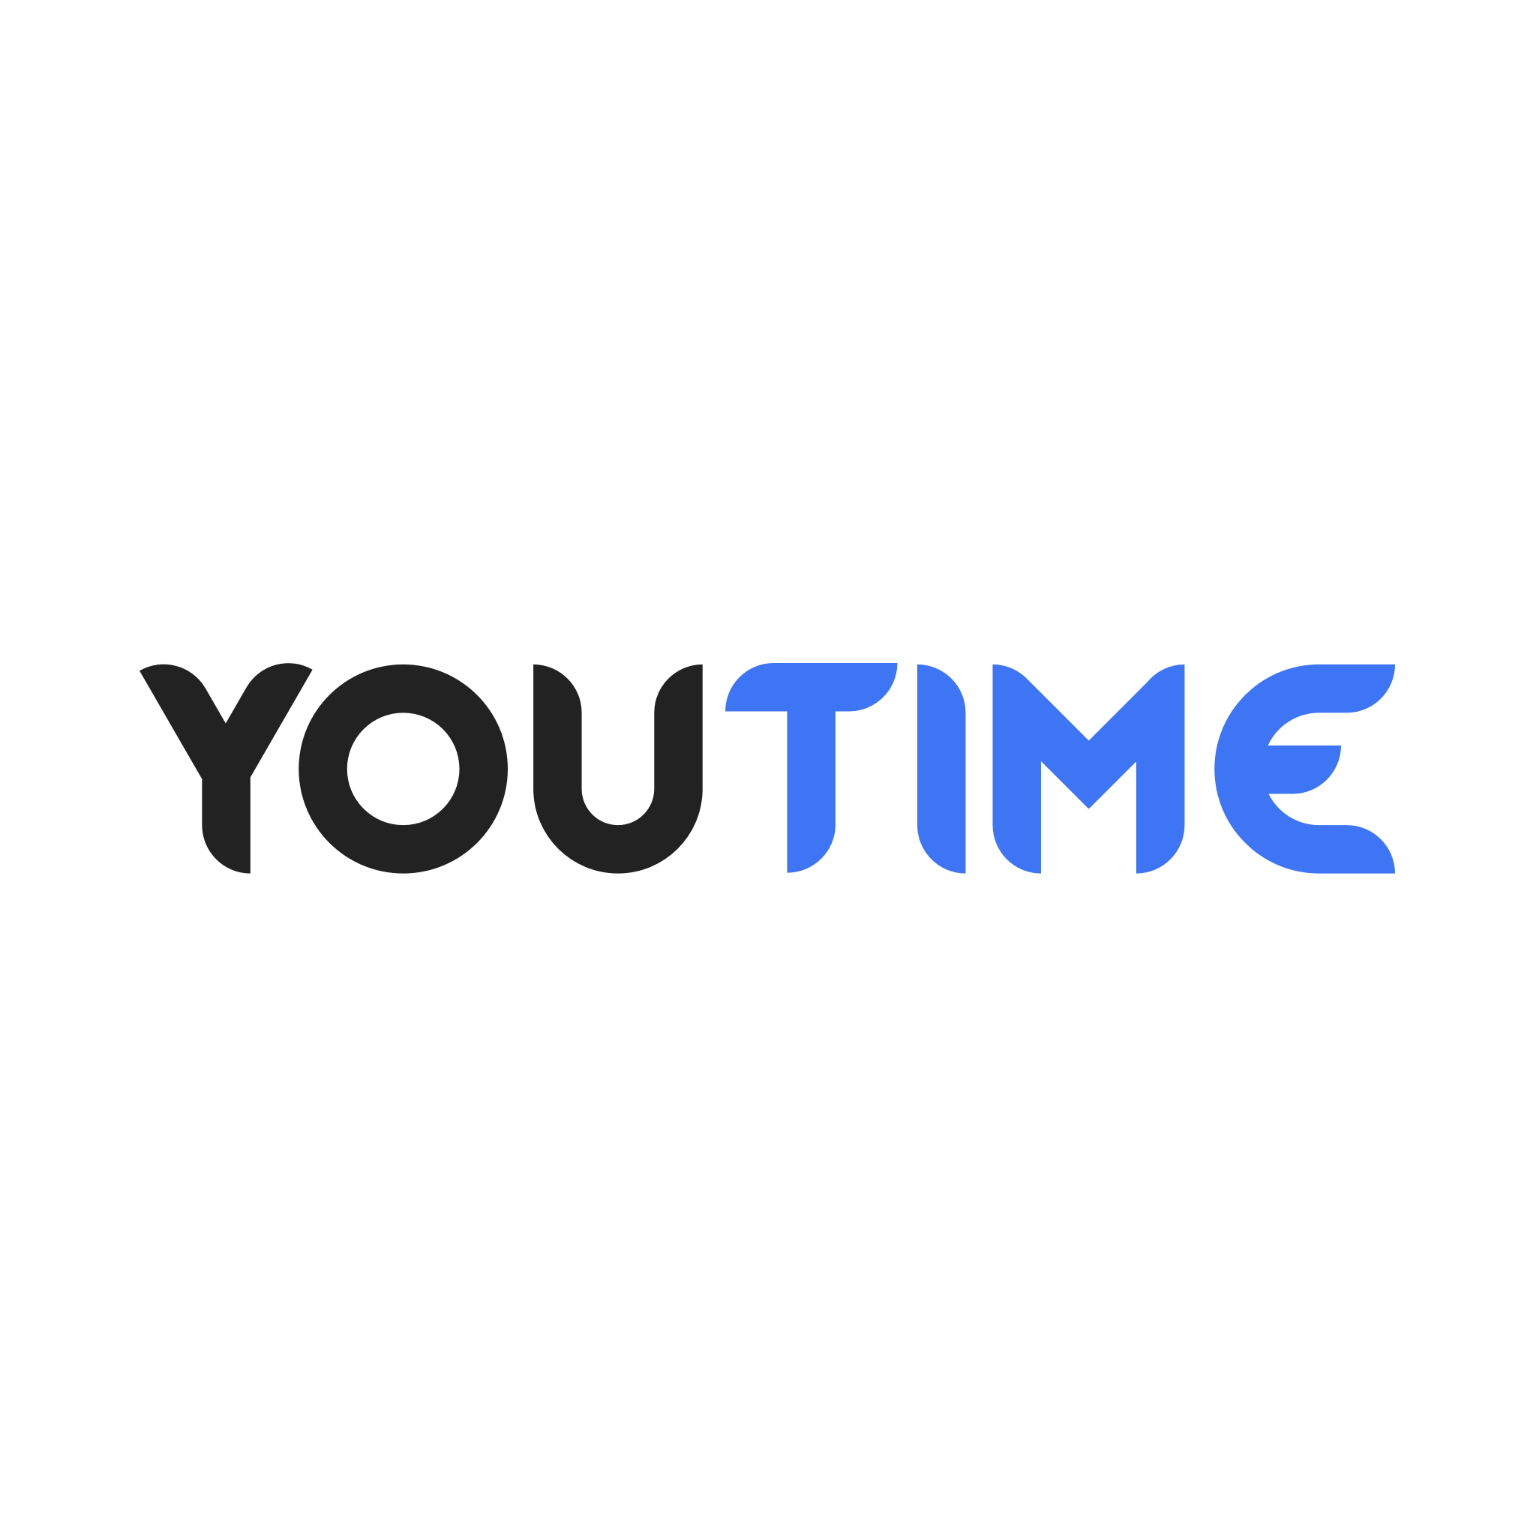 YouTime